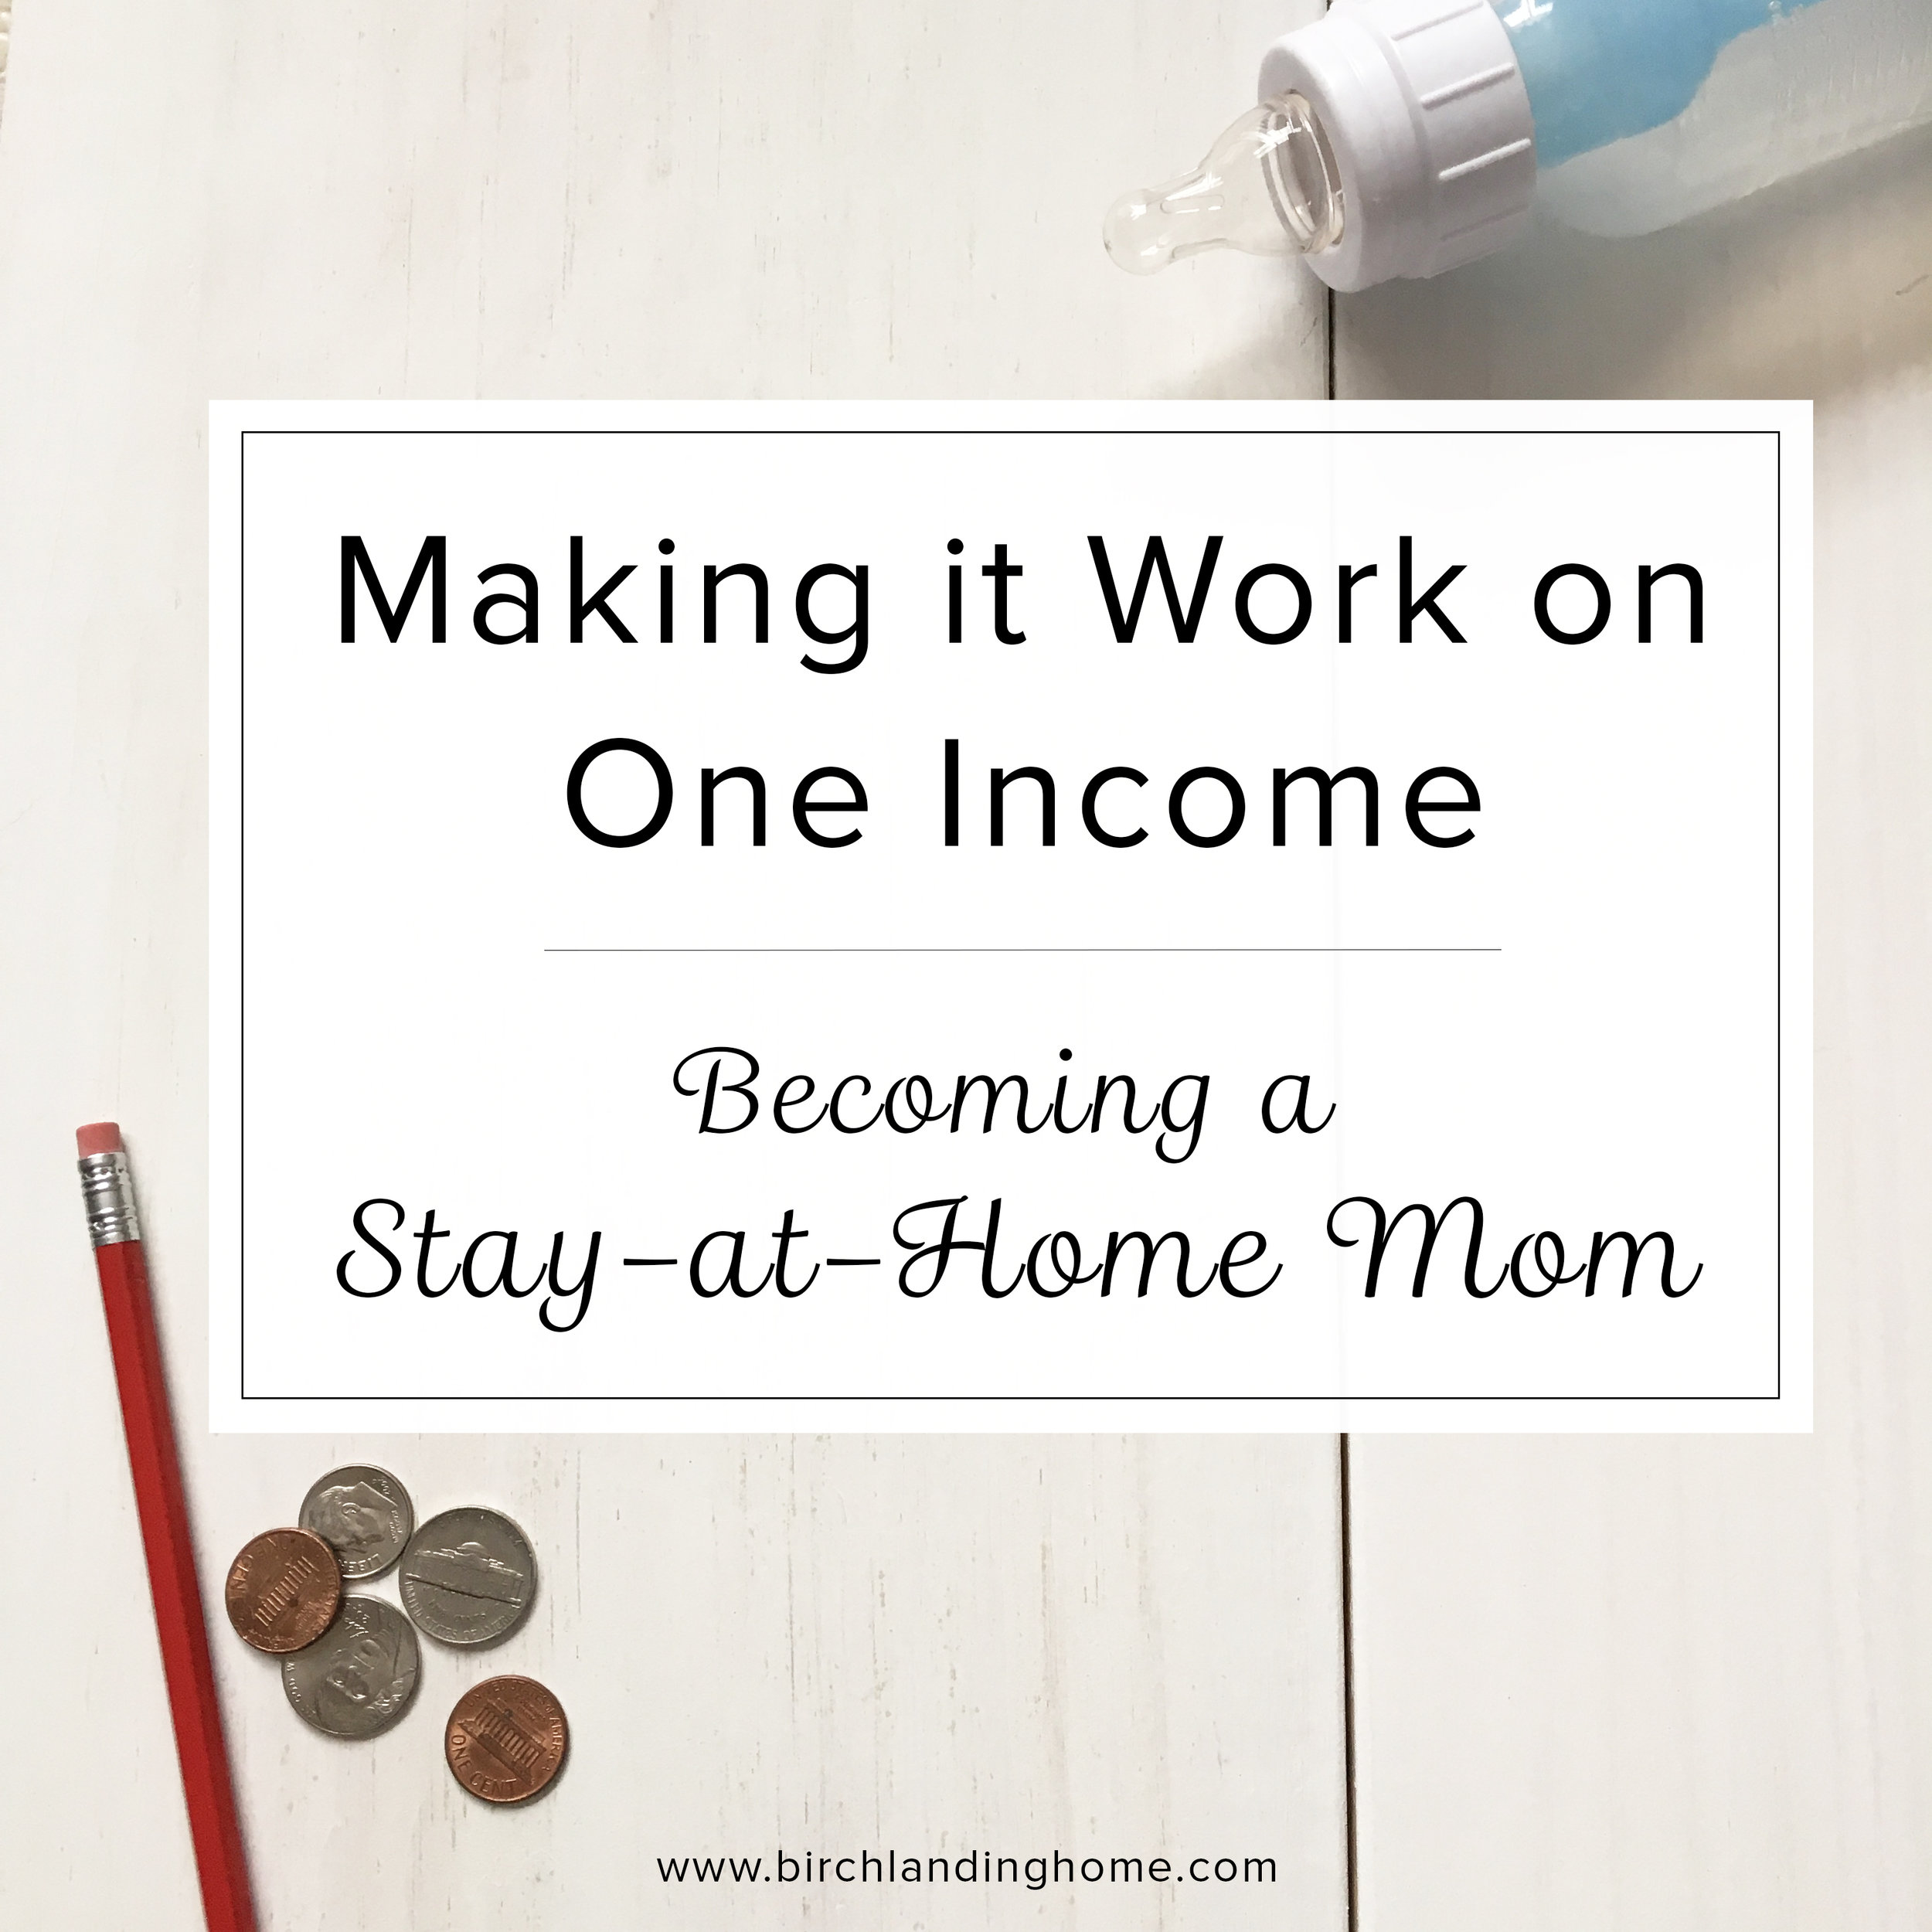 Make it Work on One Income:  Becoming a Stay-at-Home Mom